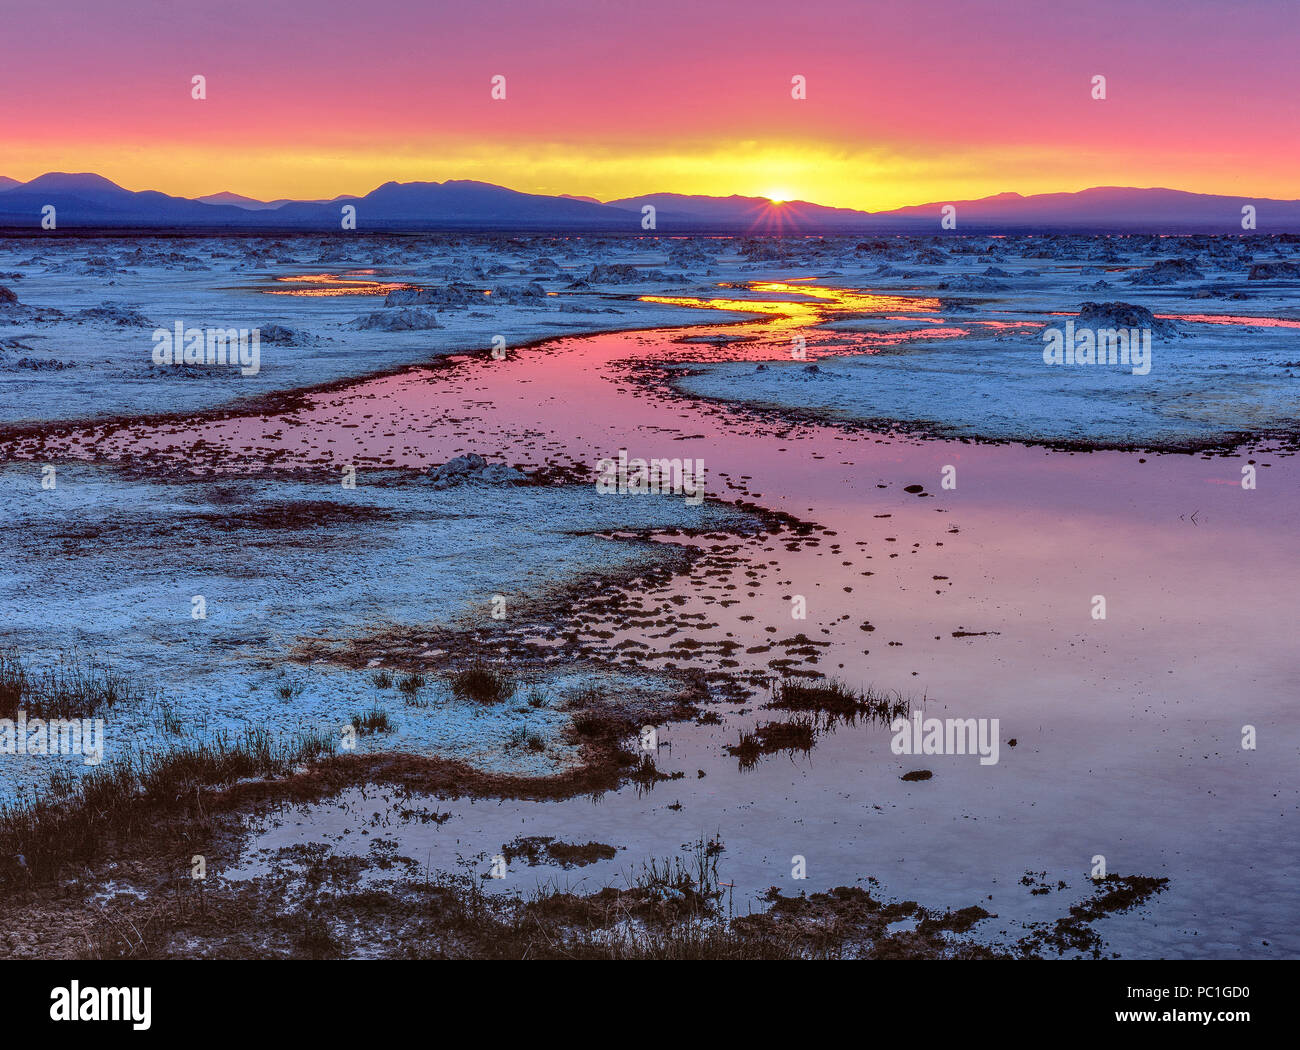 Le lever du soleil, le lac Mono, Mono Basin National Forest Scenic Area, Inyo National Forest, Californie Photo Stock